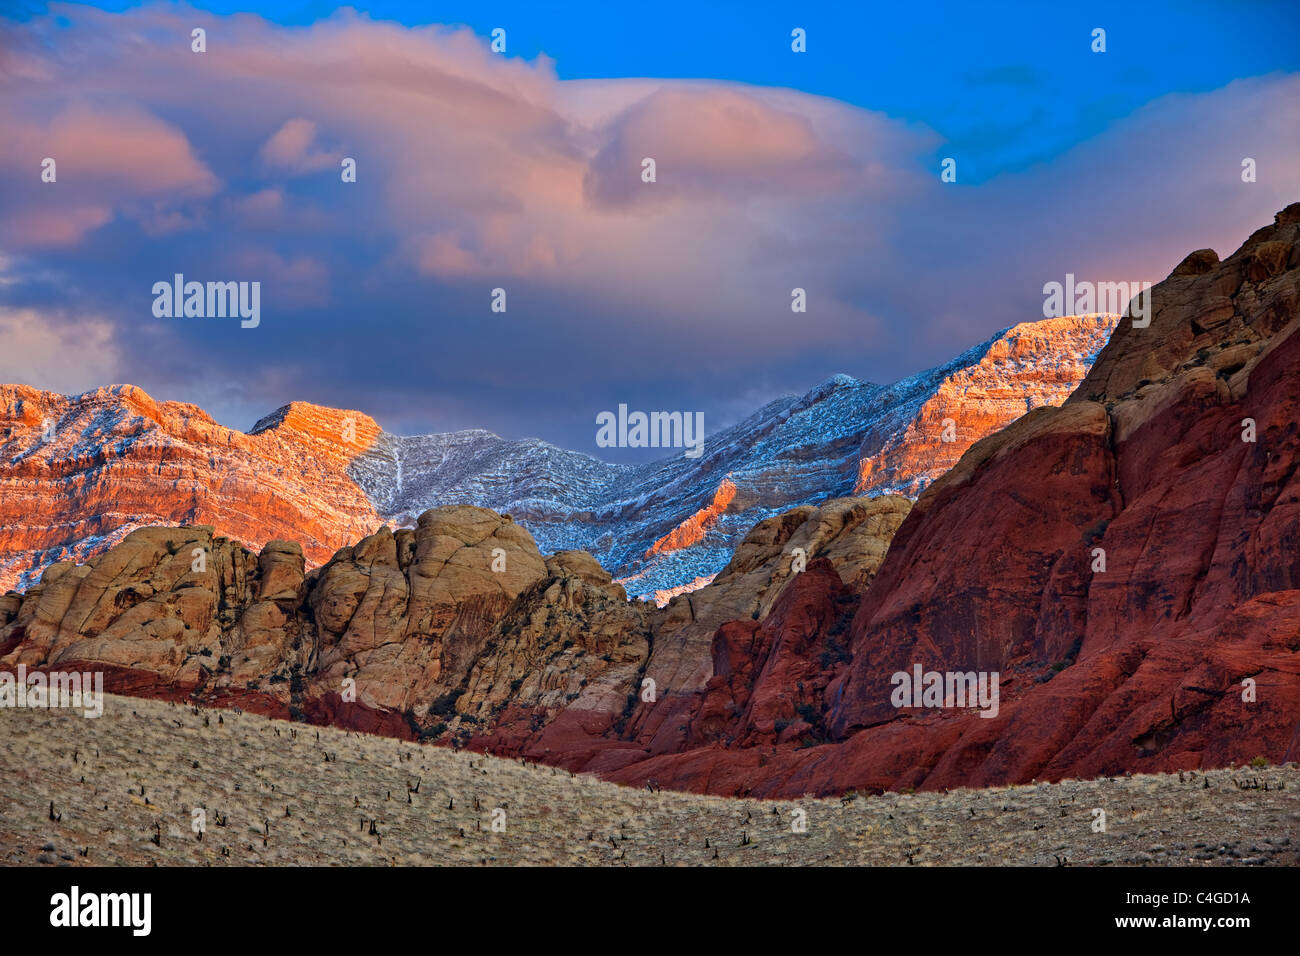 Spring Mountains, Red Rock Canyon National Conservation Area, Fresh snow on Spring Mountains during sunrise in Red - Stock Image